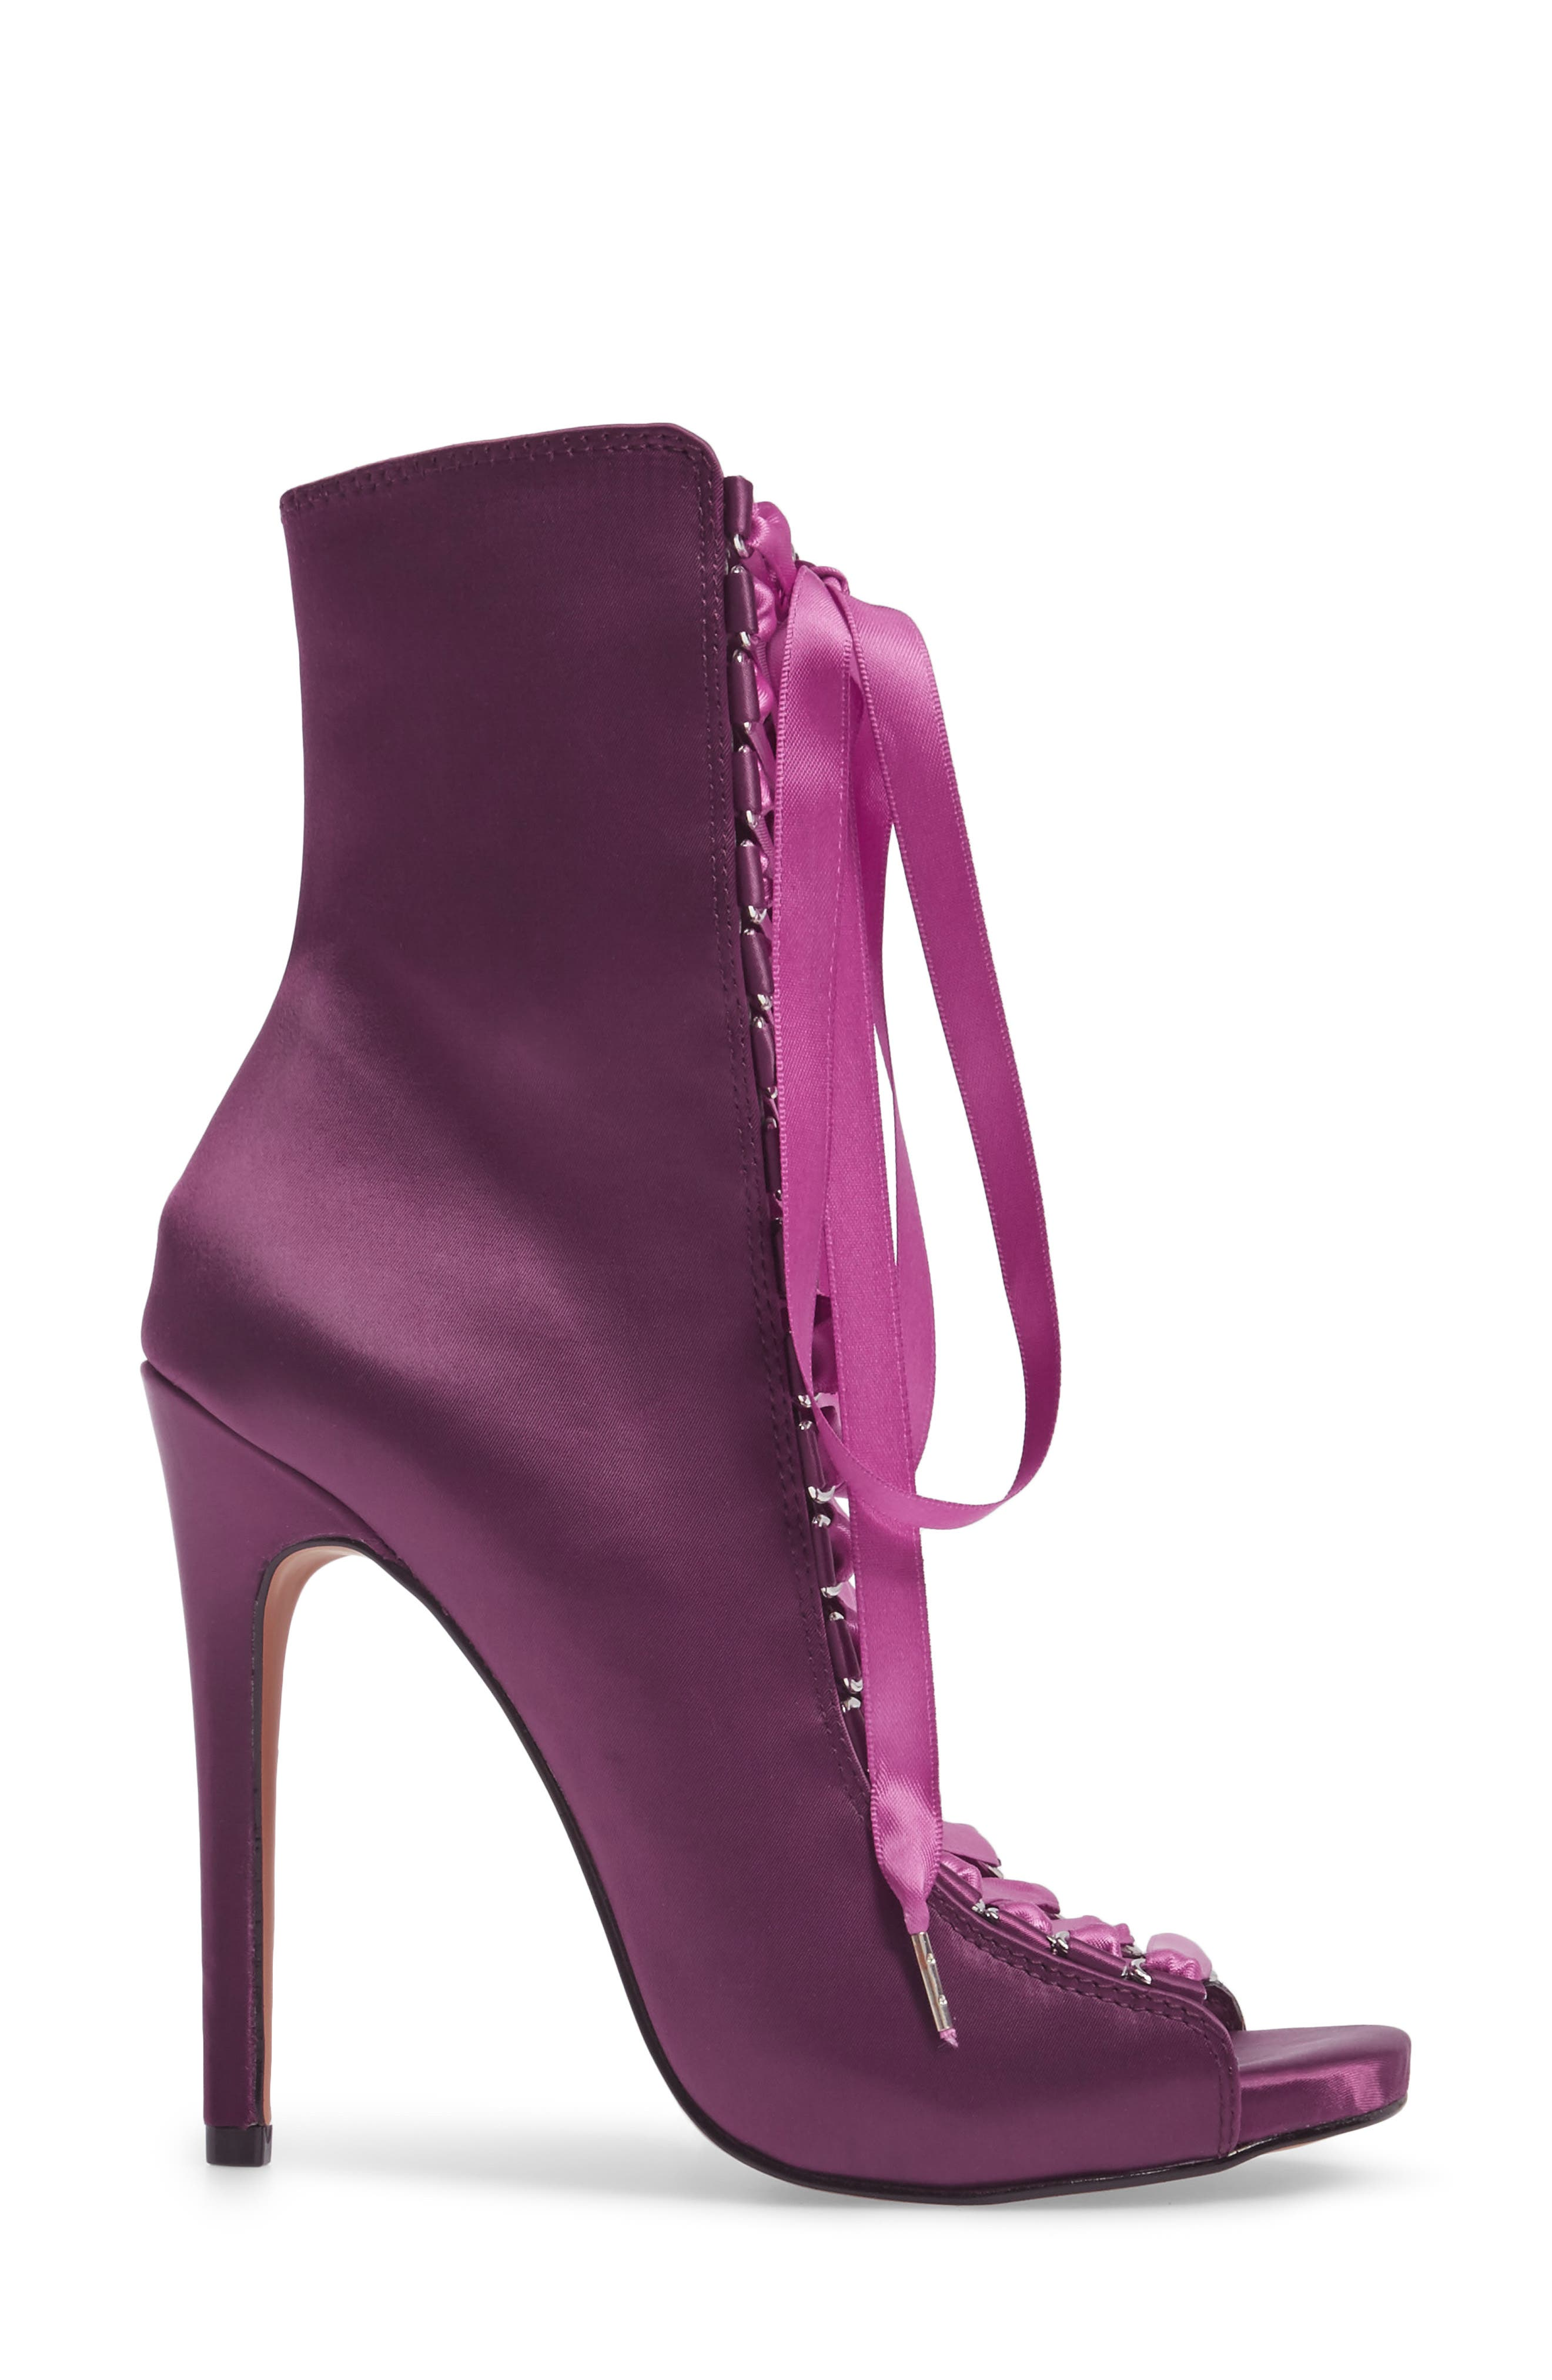 Fuego Lace-Up Bootie,                             Alternate thumbnail 3, color,                             Dark Purple